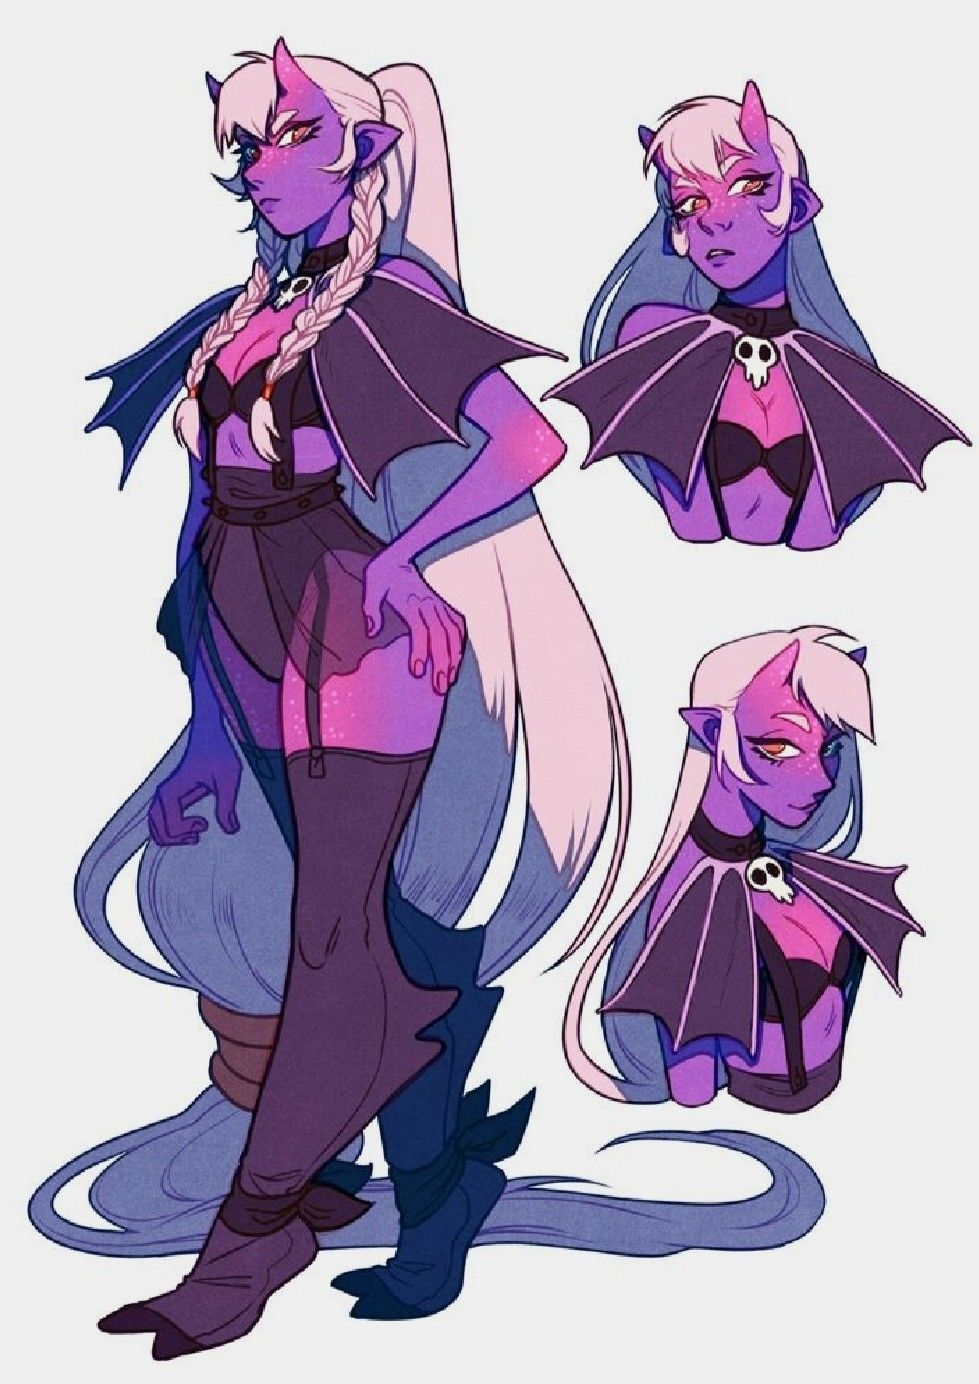 Pin By Natalie Griffin On Art Drawings In 2020 Character Art Character Design Inspiration Character Design